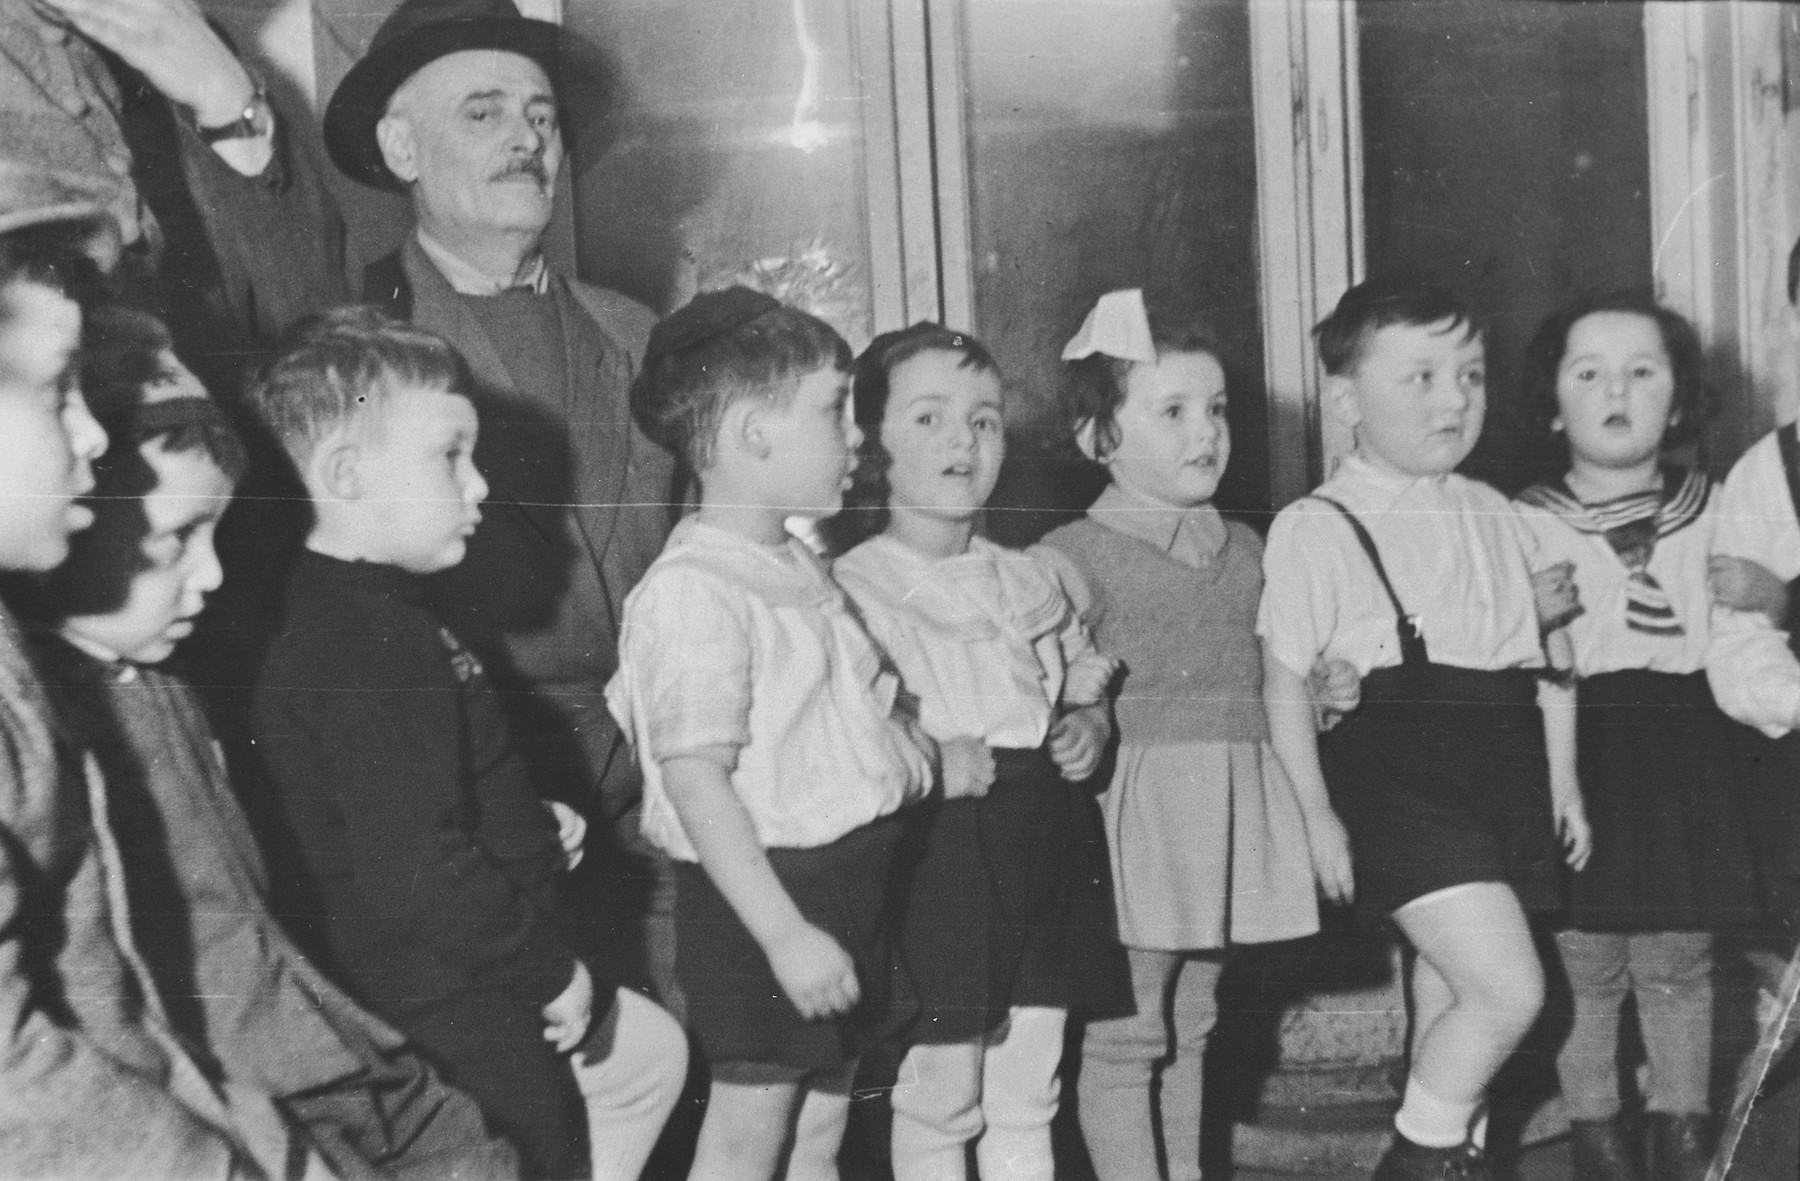 Group portrait of children in the Jewish kindergarten in Lodz standing linking arms during what is probably a children's performance.